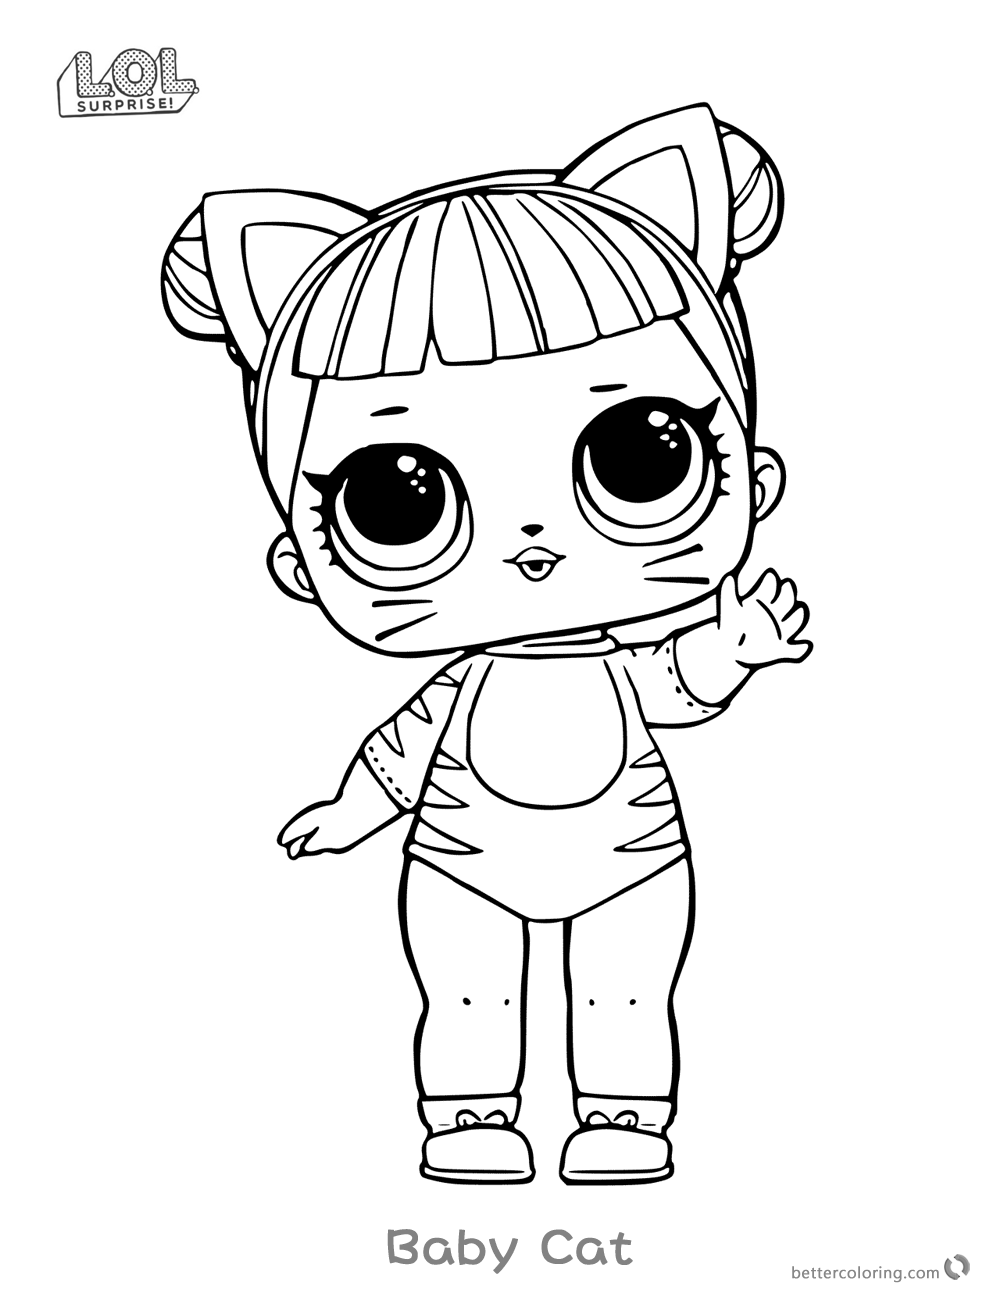 coloring template printable lol colouring pages lol coloring pages three dolls free printable coloring pages printable pages lol coloring template colouring